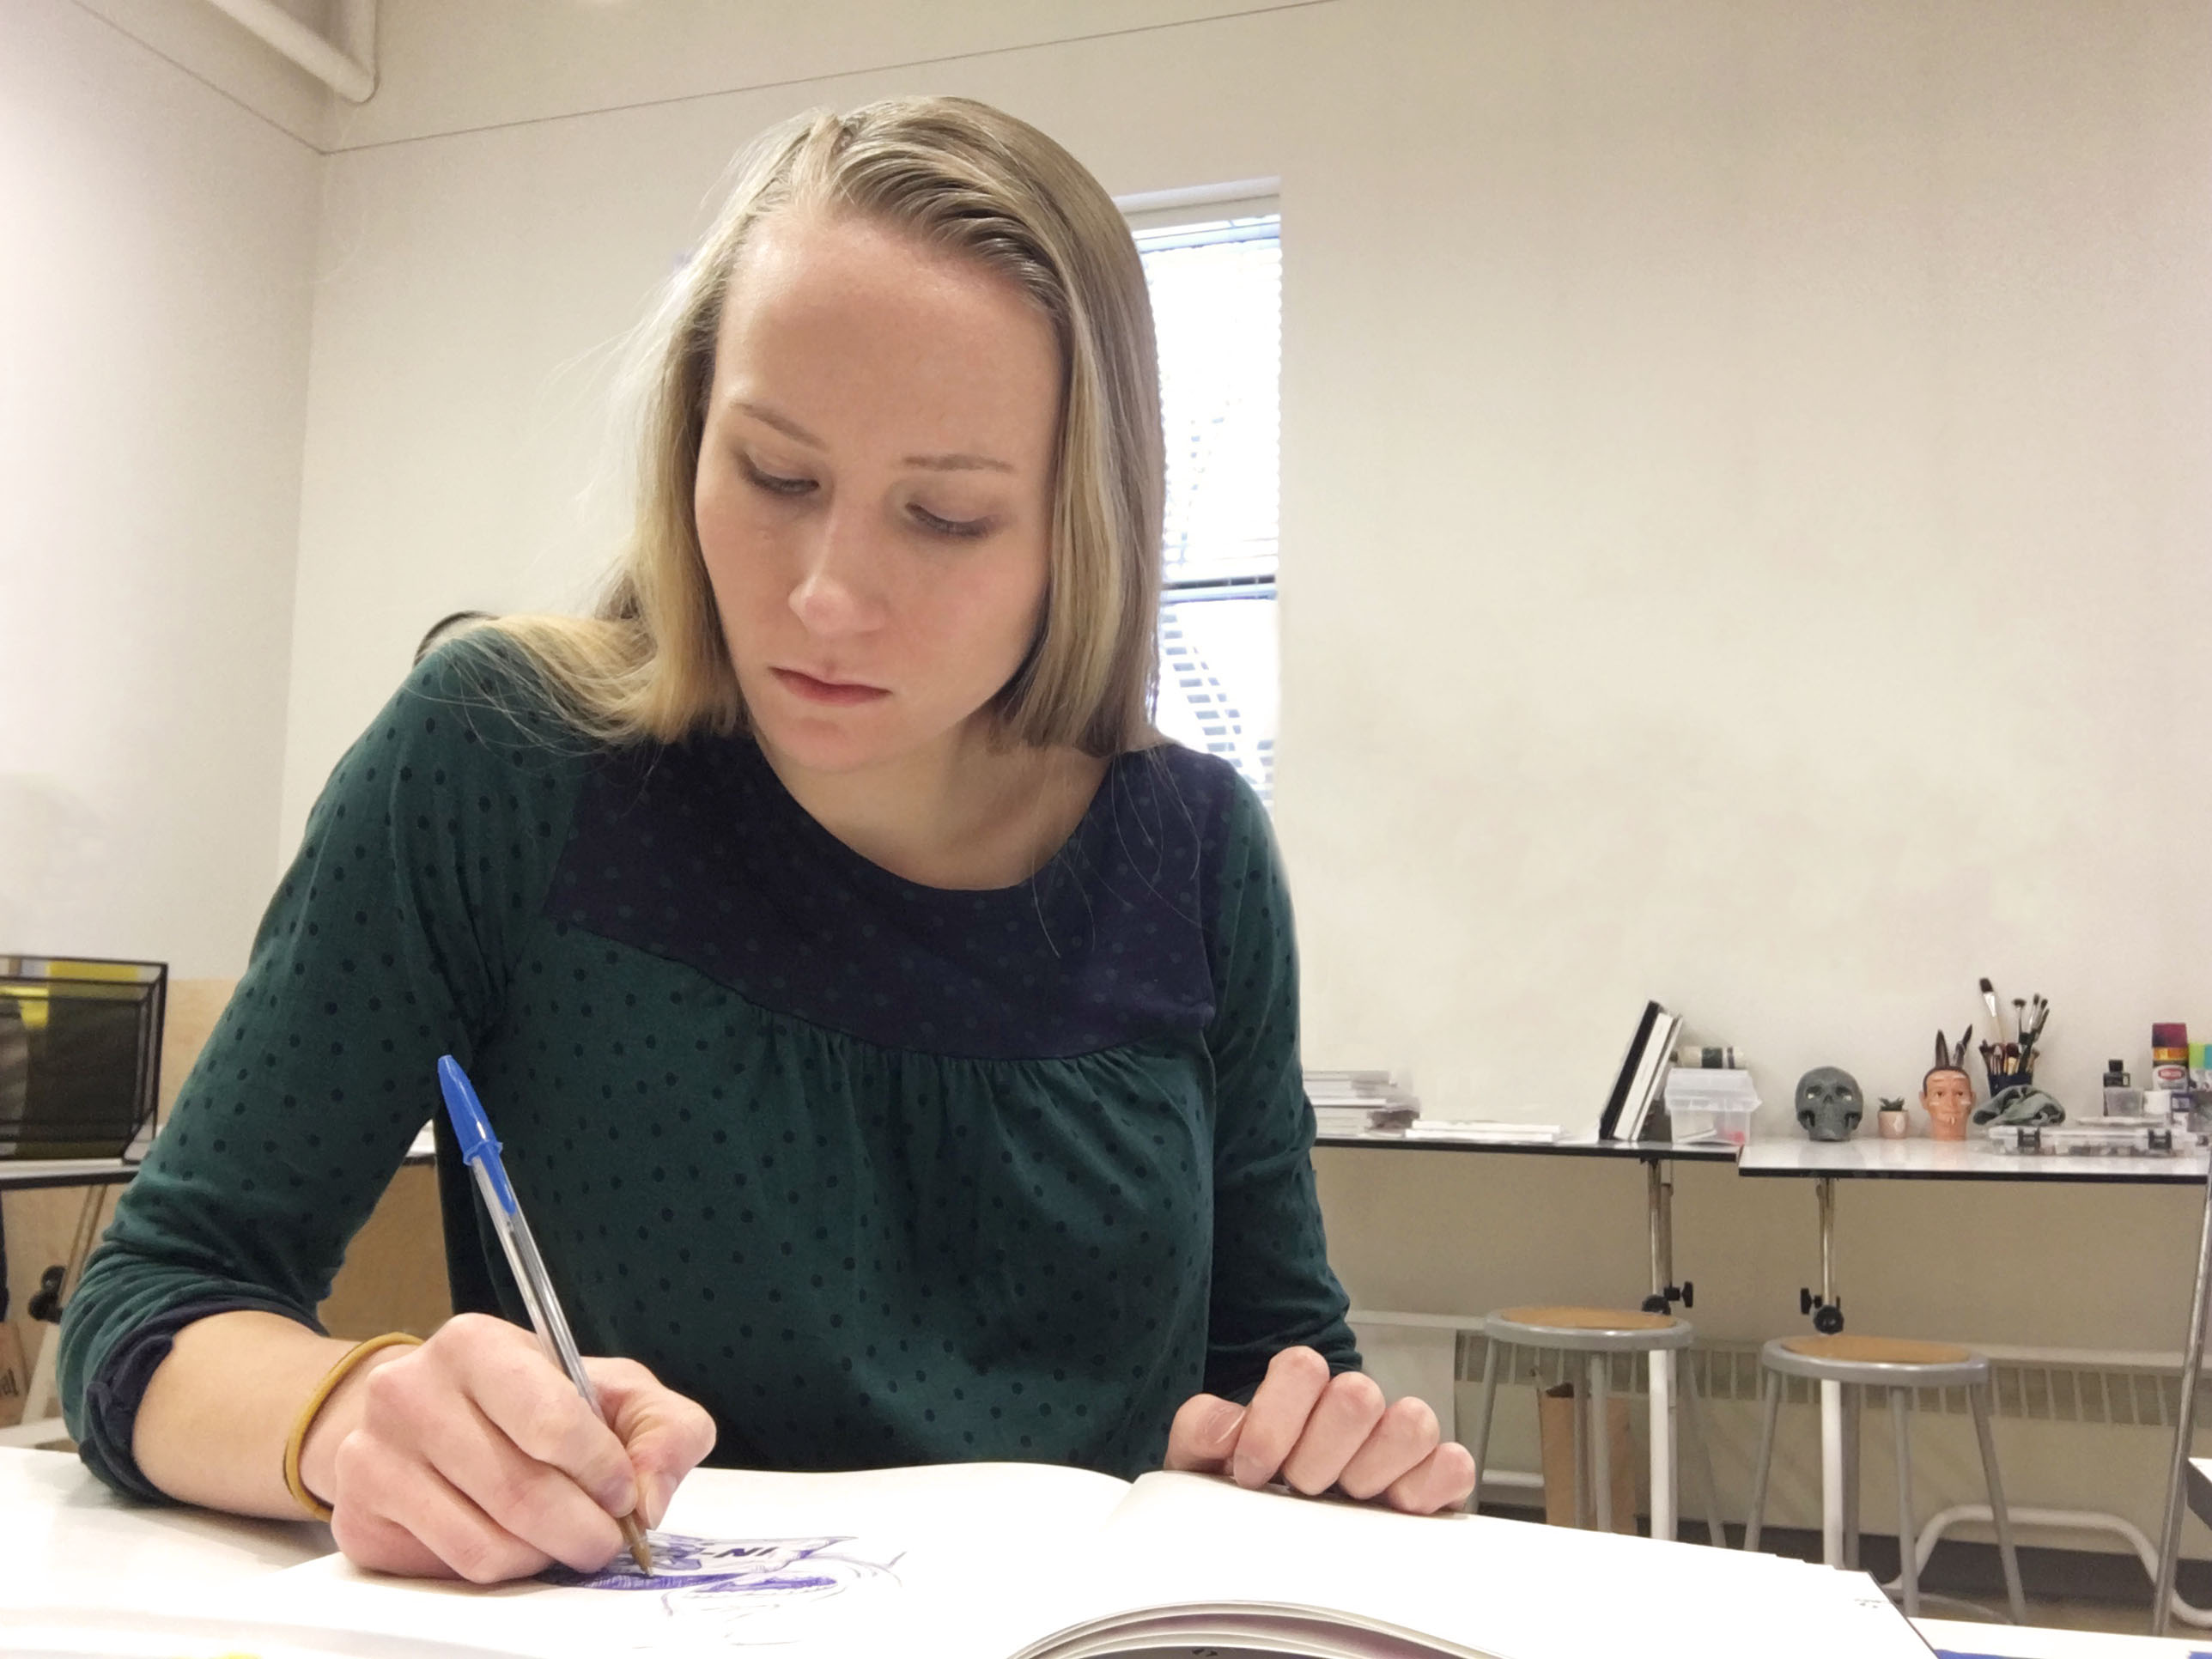 Maddie LeBrun, featured artist, drawing in her sketchbook